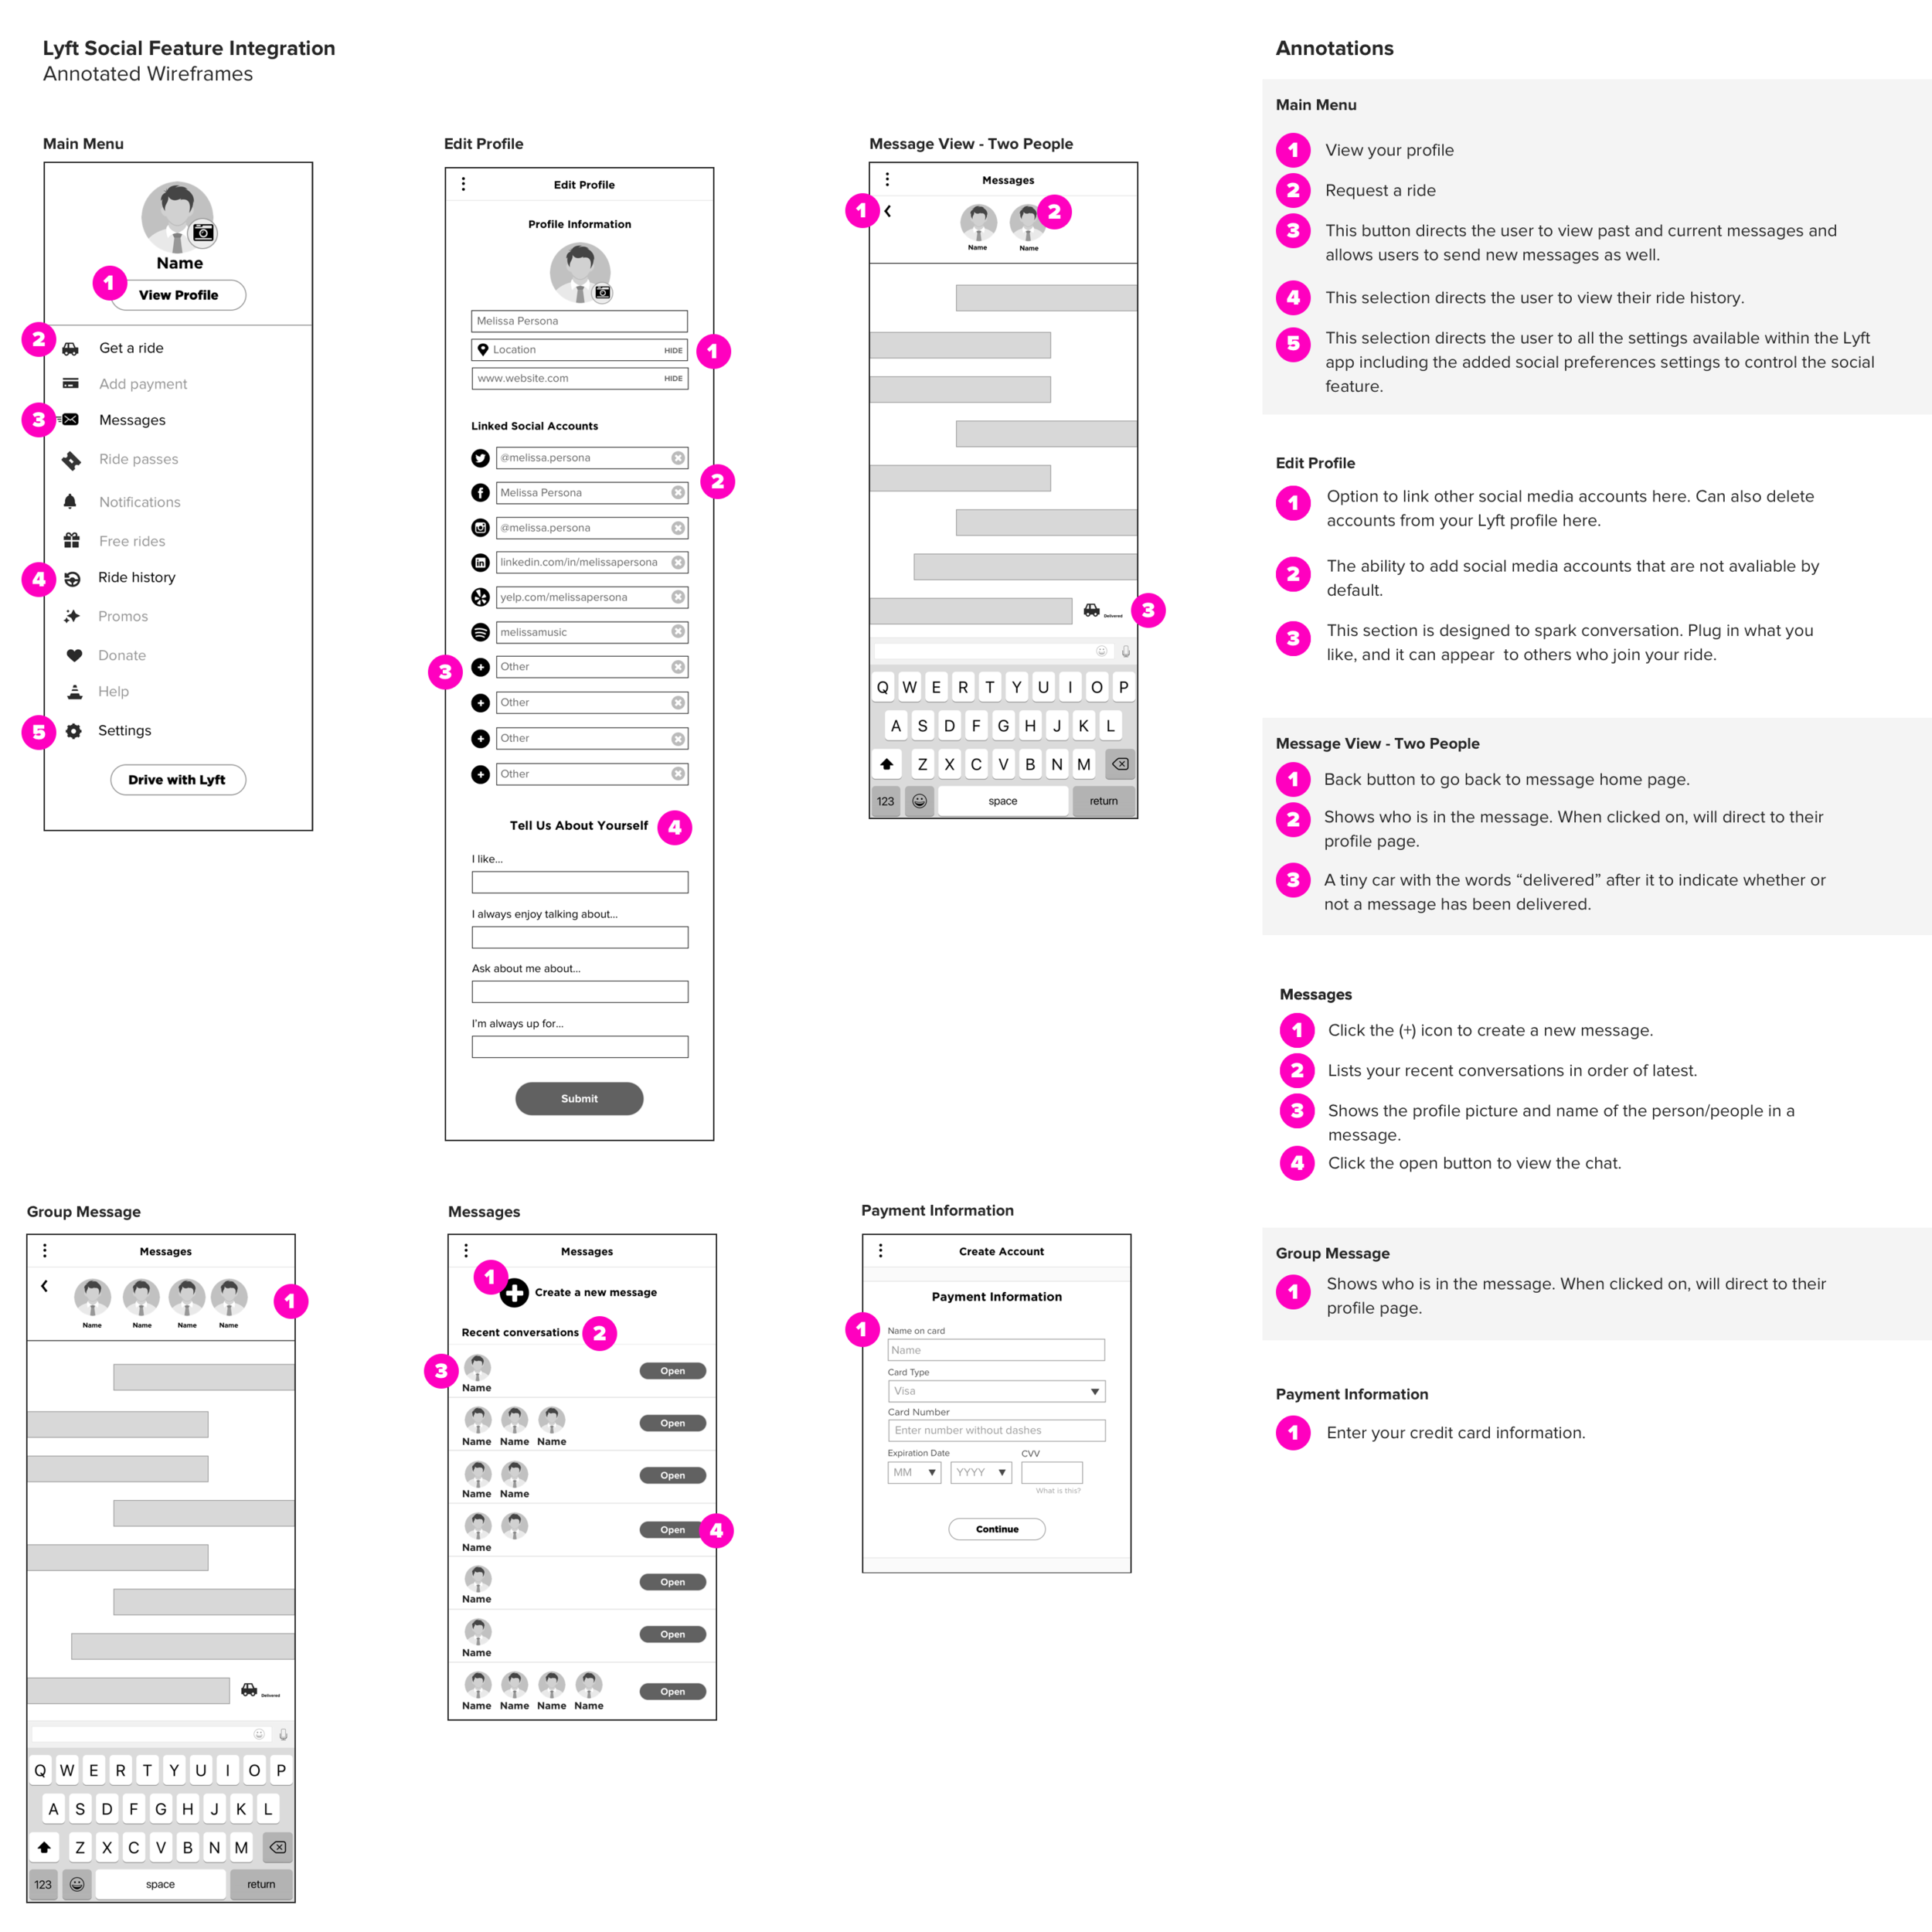 Annotated_Wireframes2.png